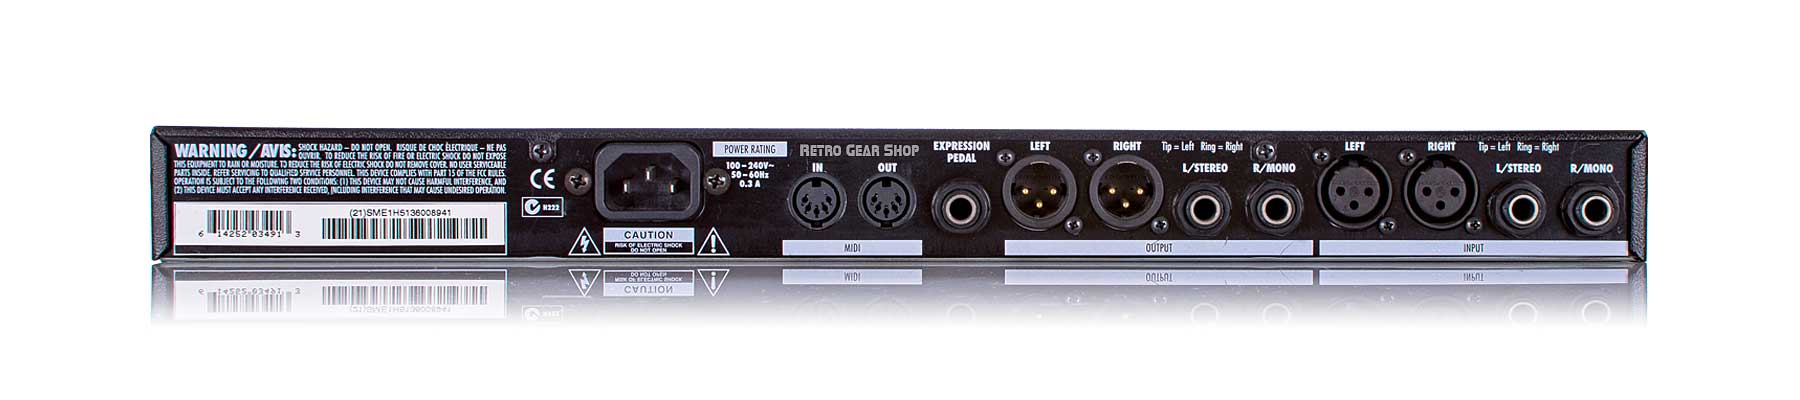 Line 6 Echo Pro Delay Rack Effect Rear